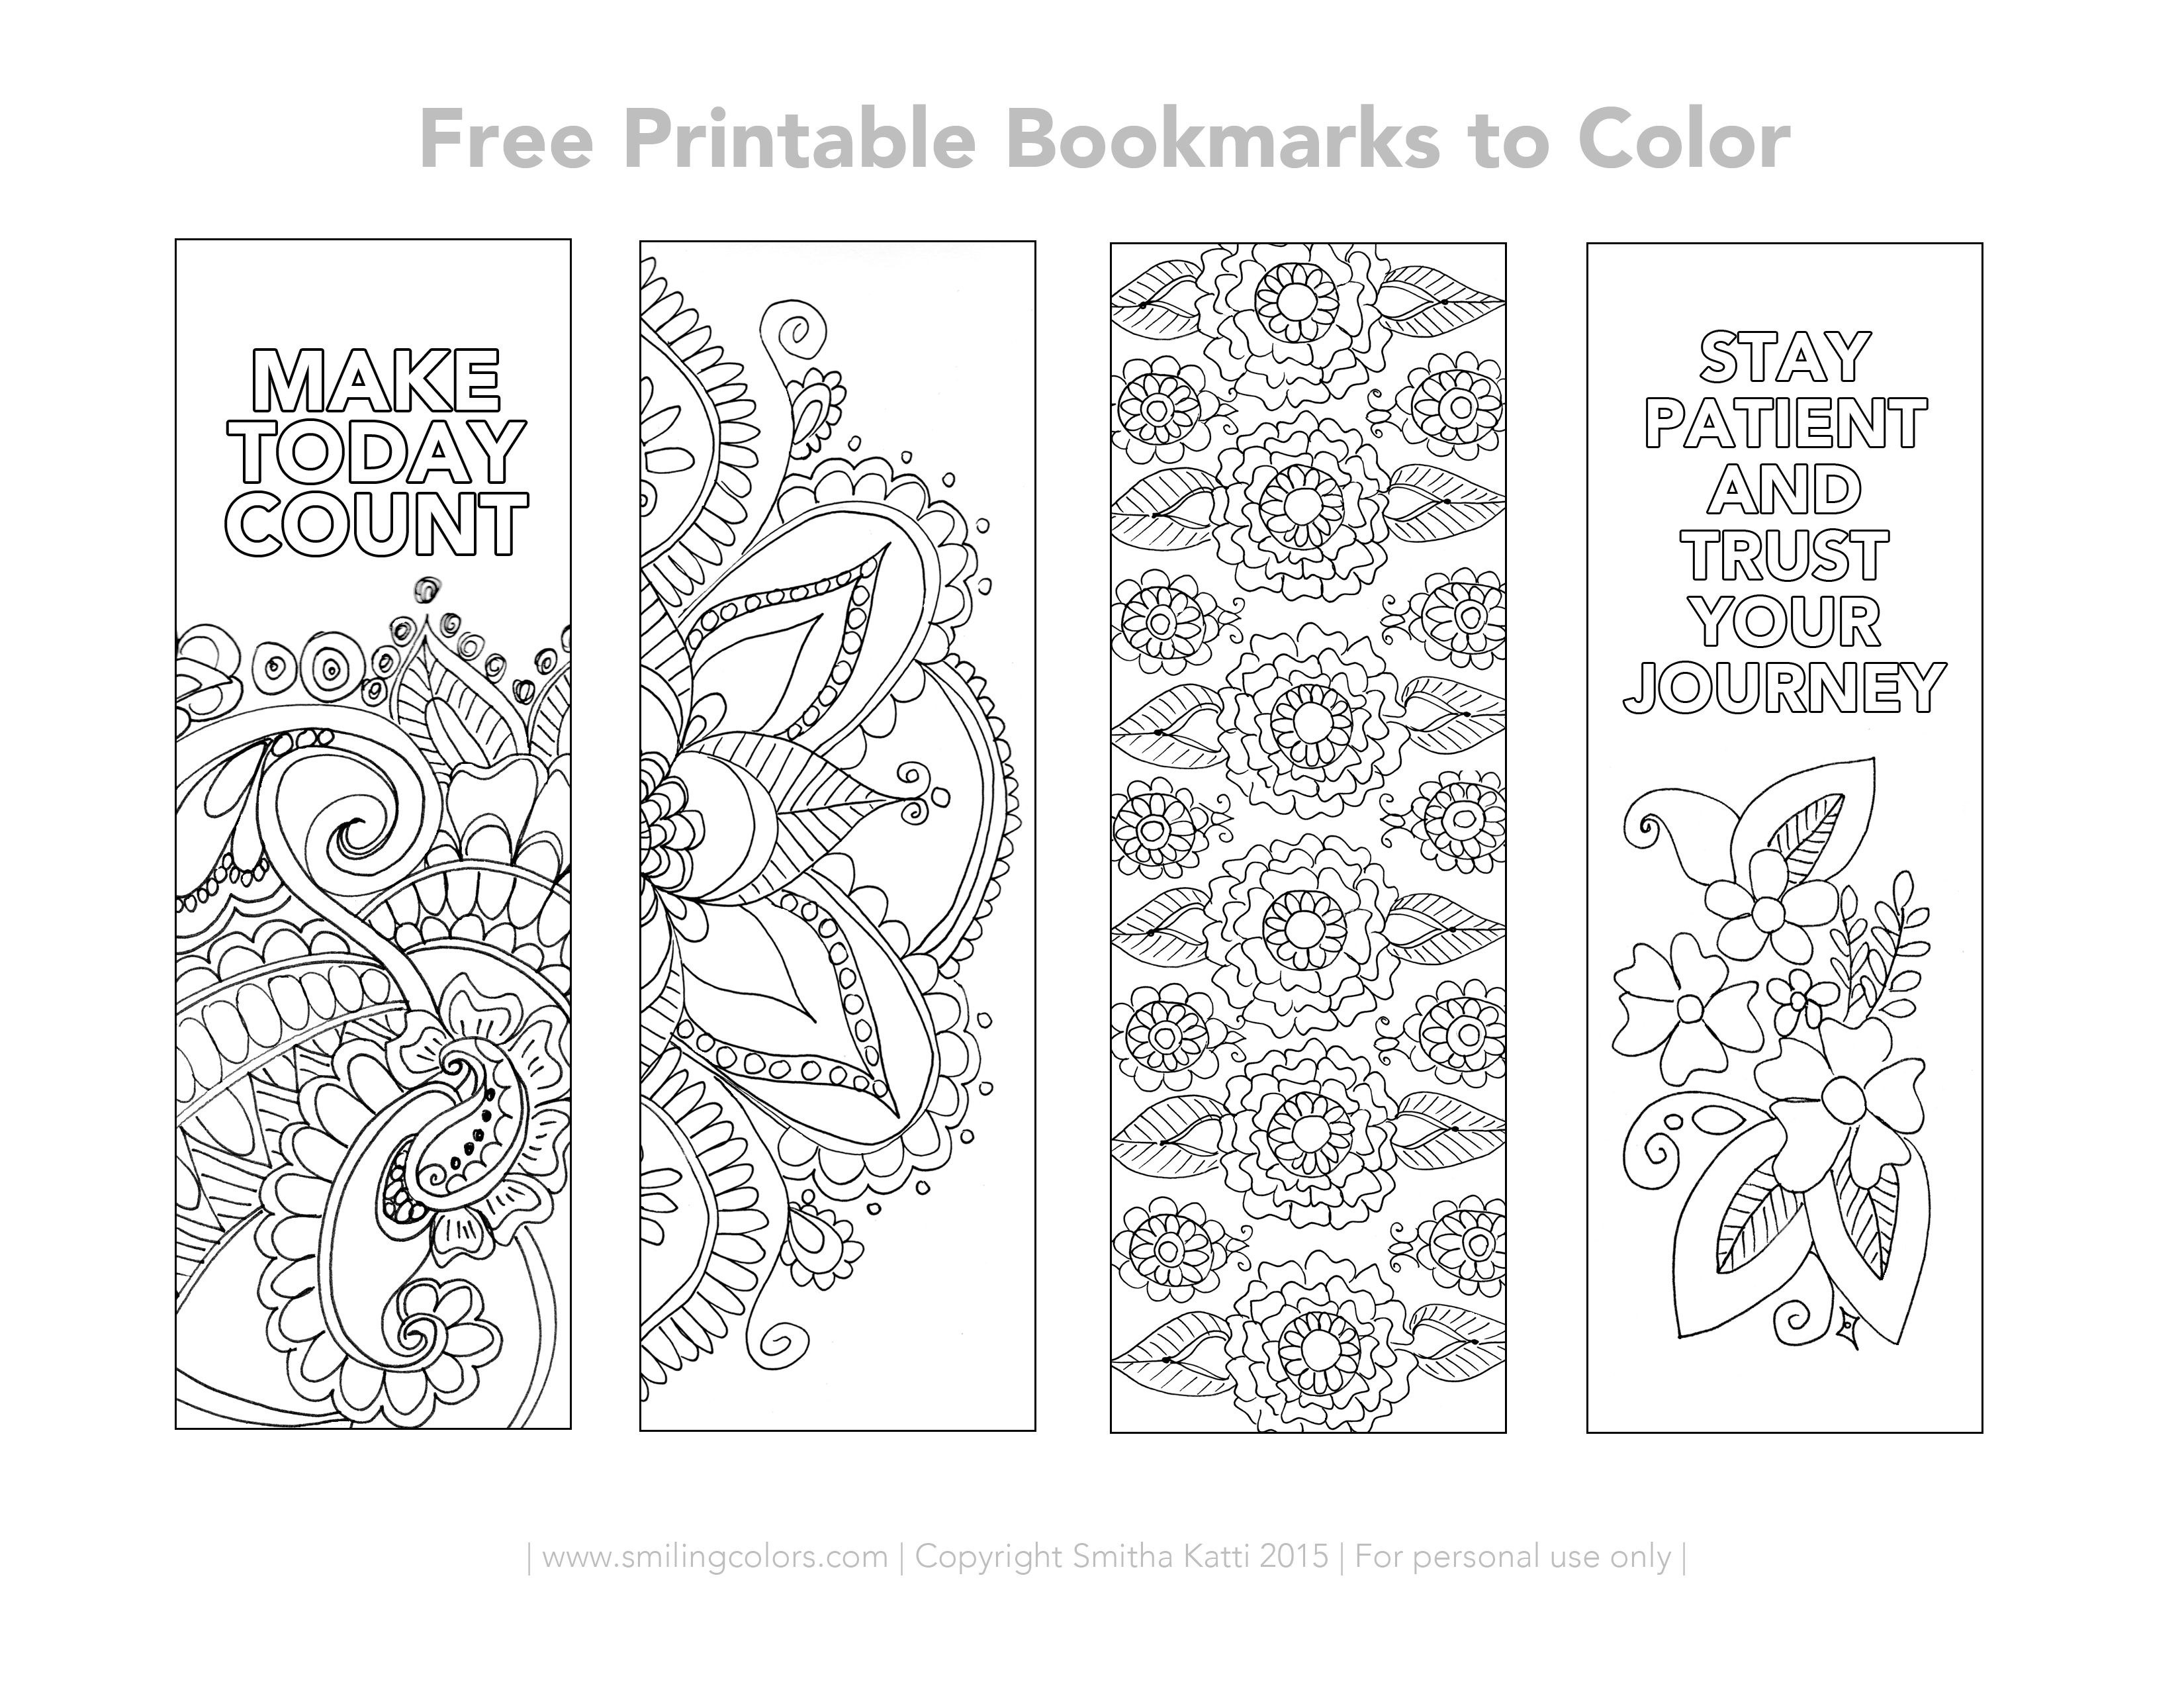 create your own bookmark template - free printable bookmarks to color smitha katti